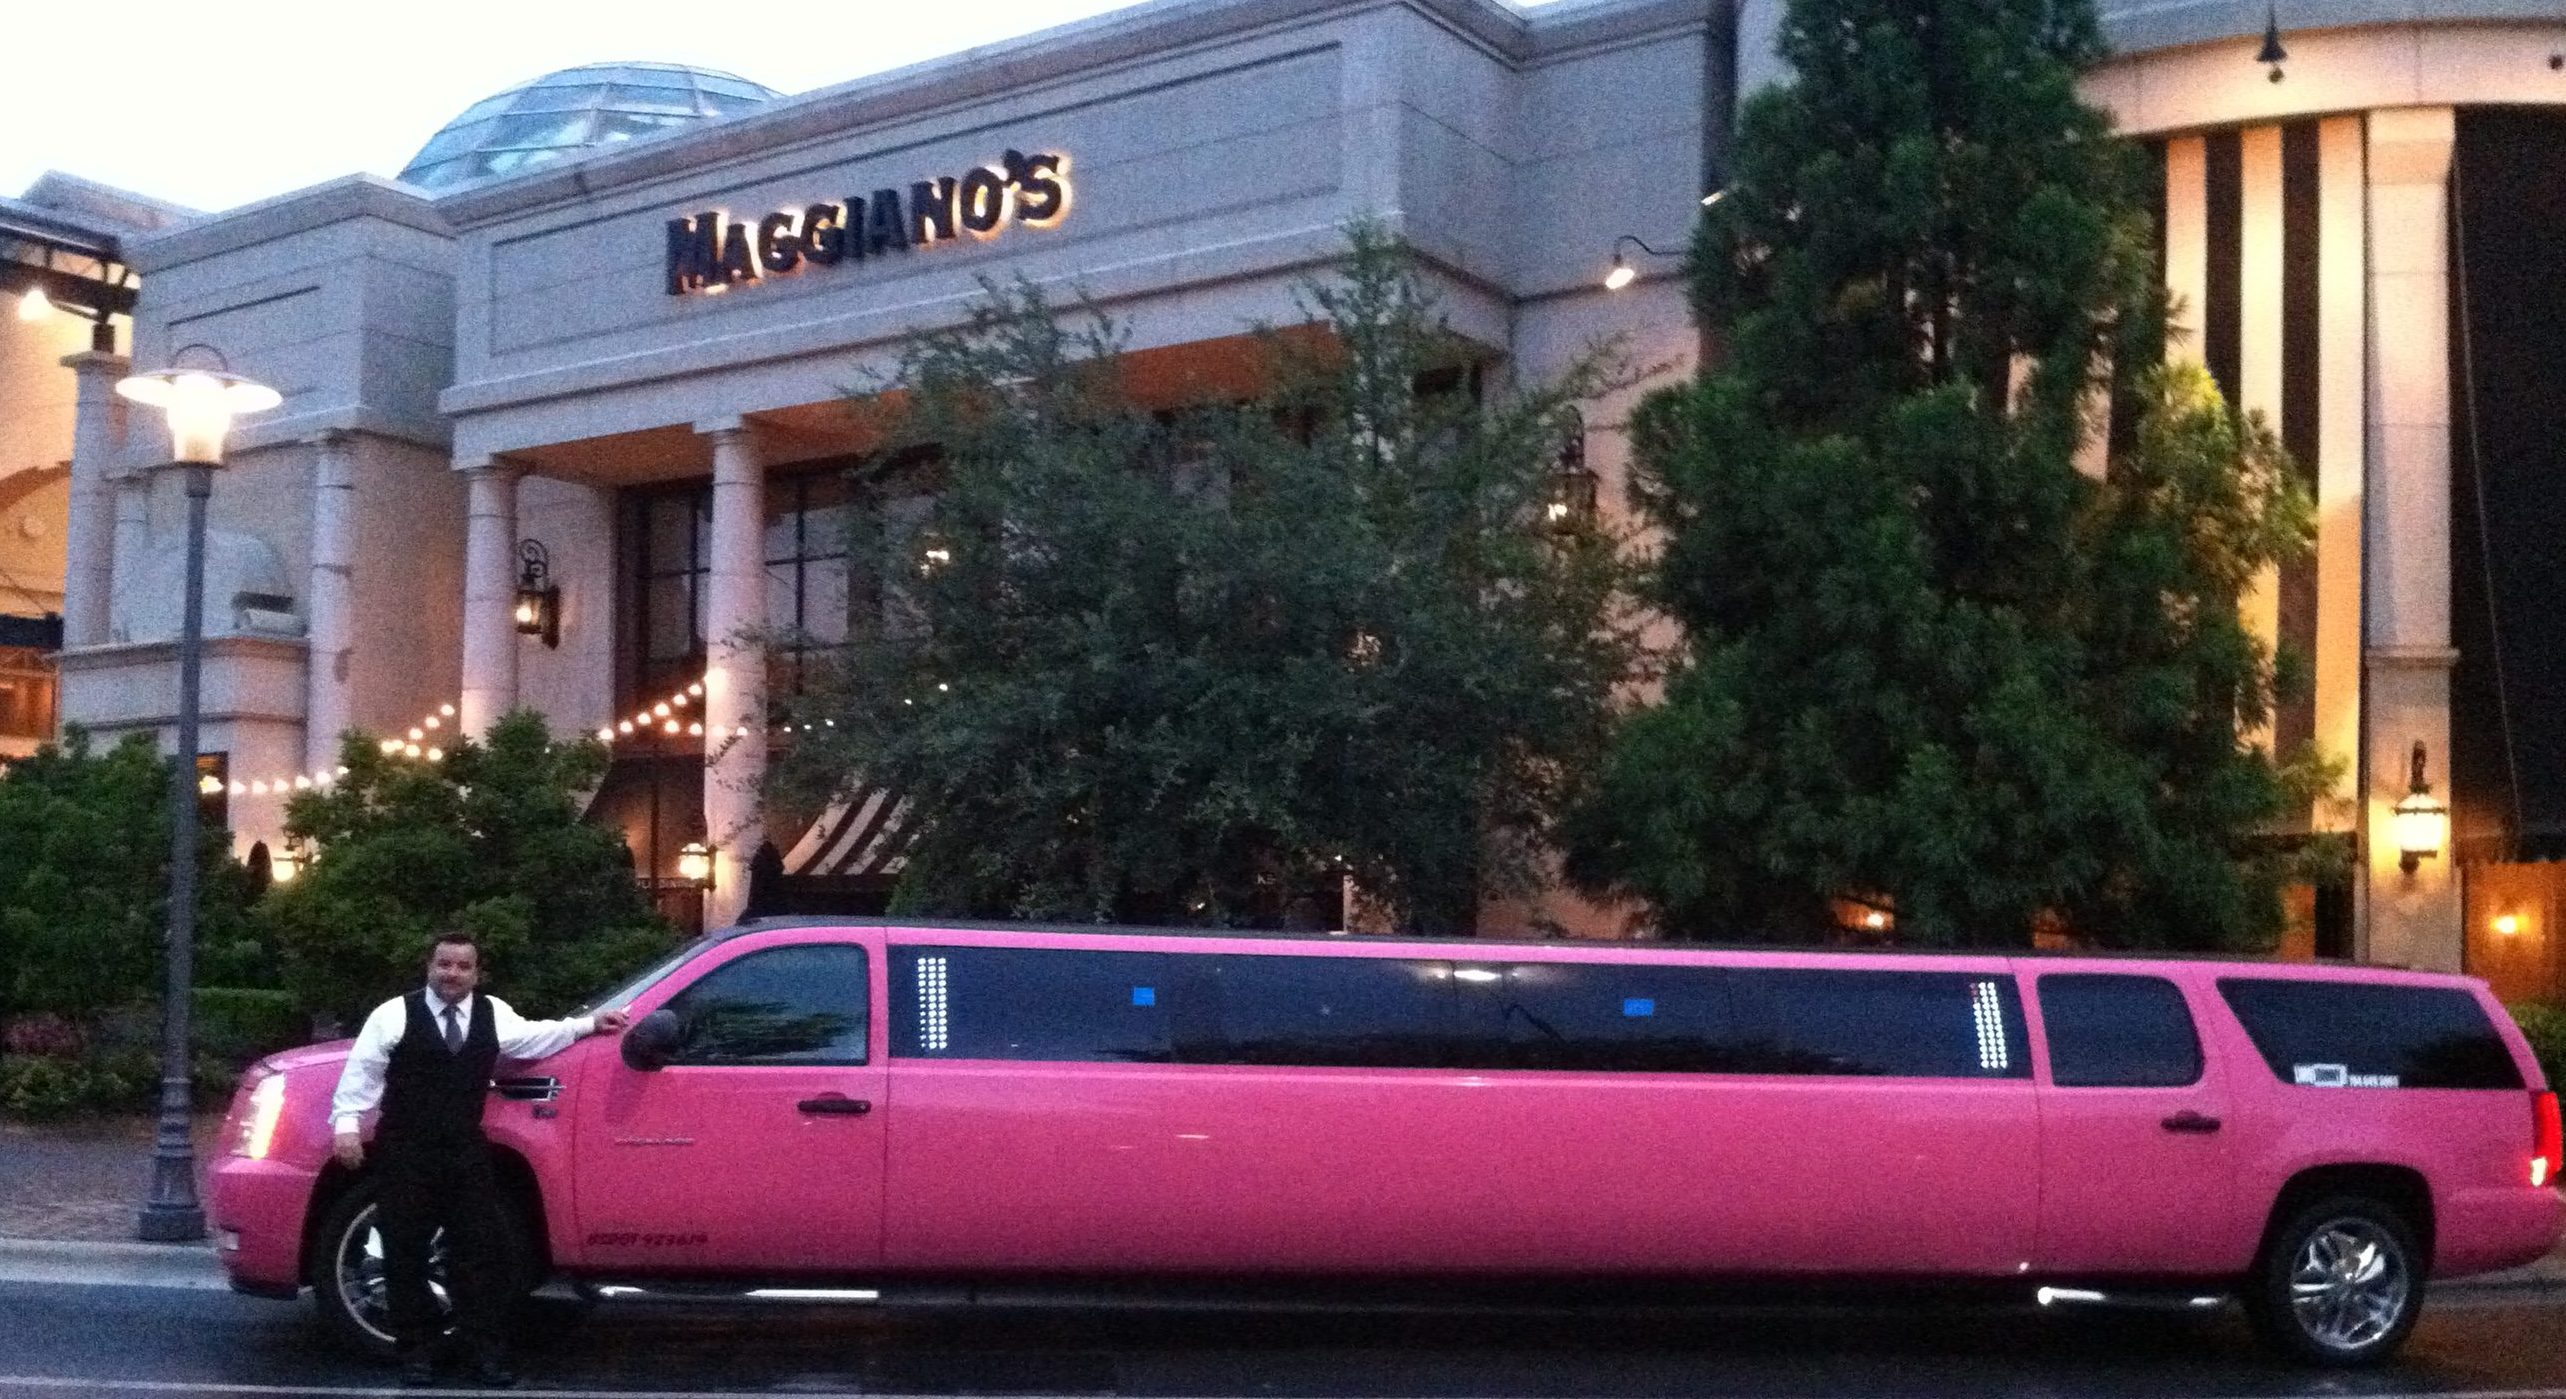 Maggianos pink limo Johnny B's